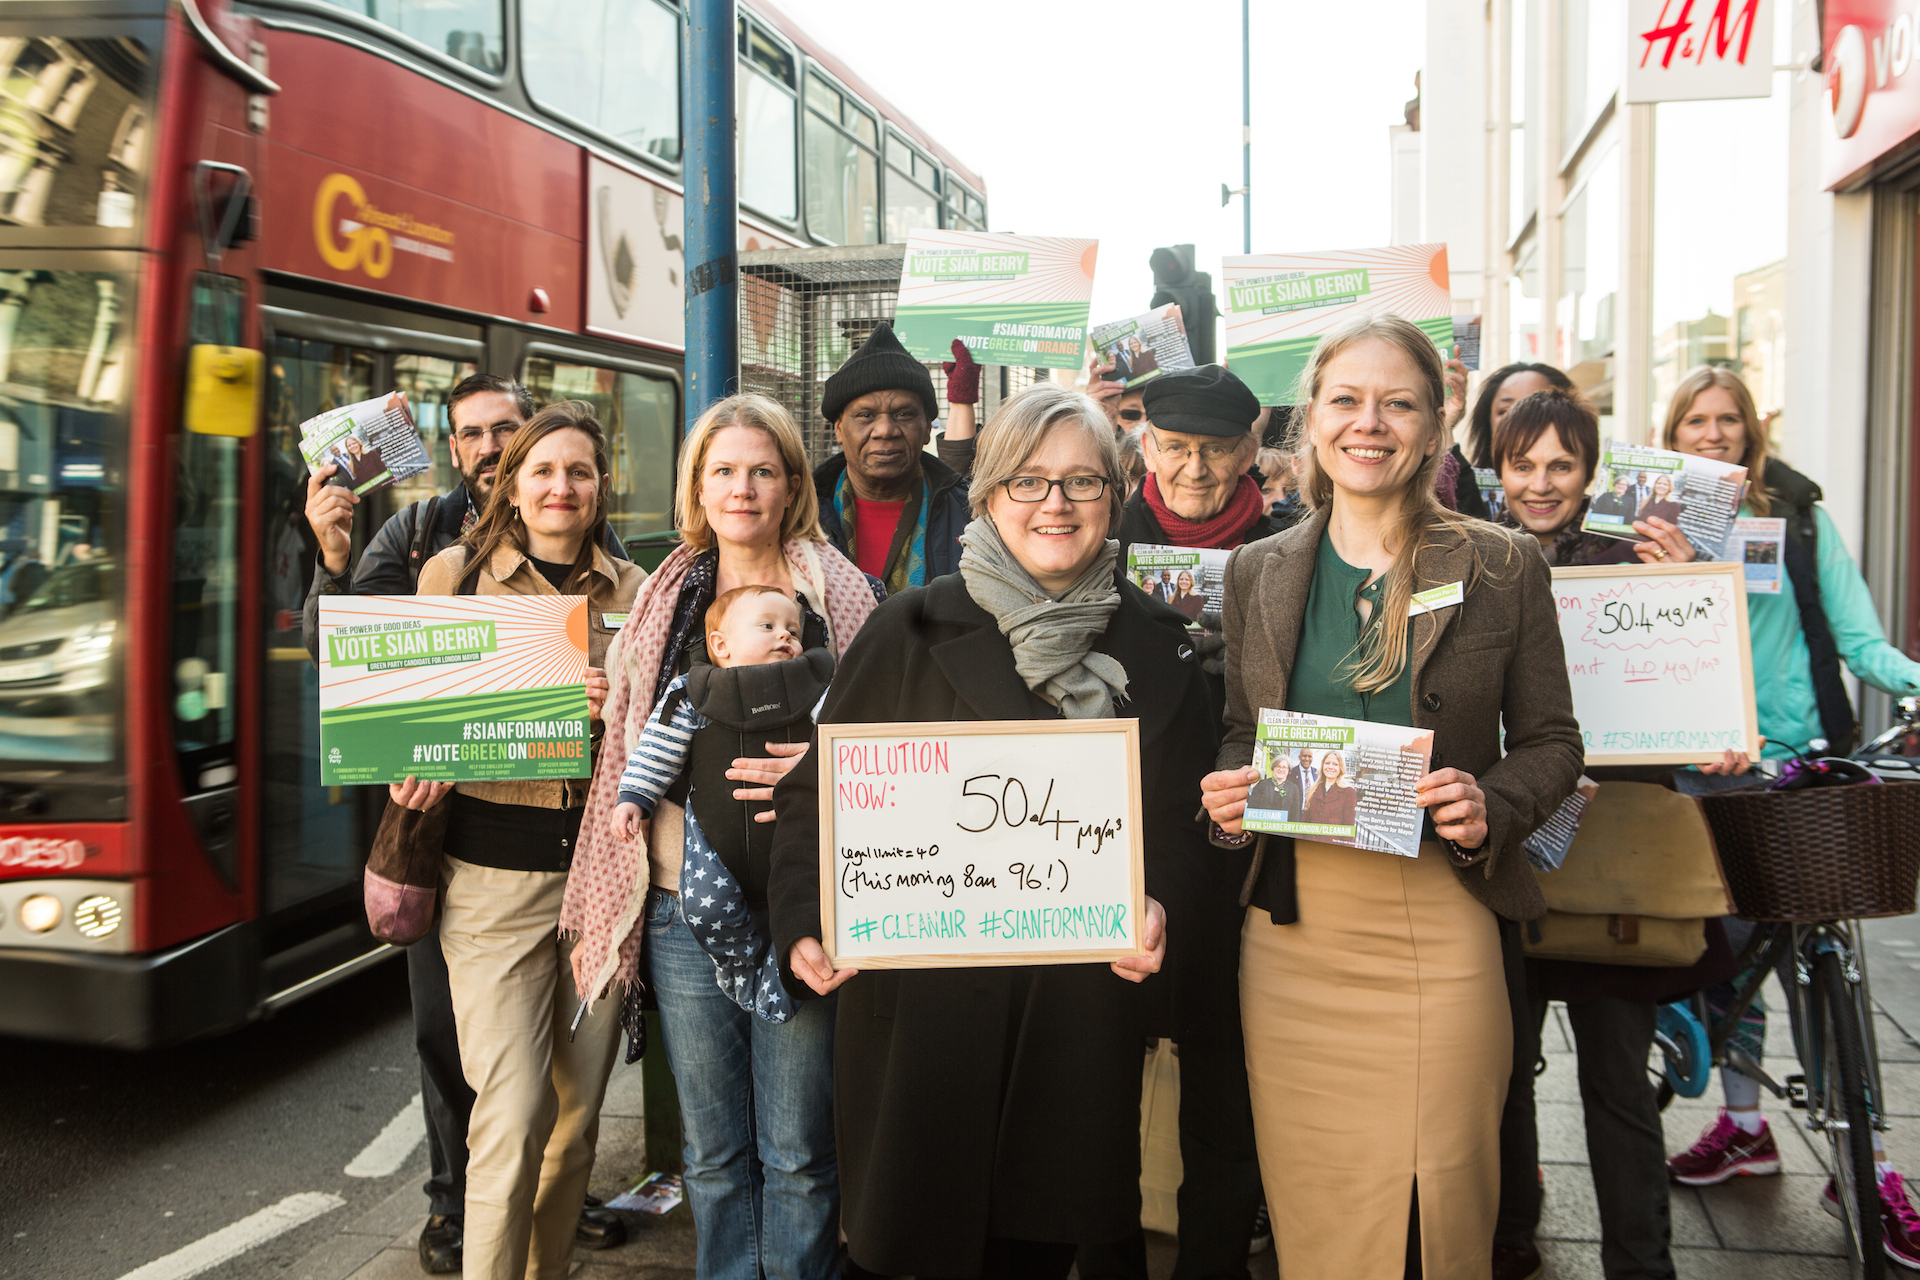 Sian Berry (front right) campaigning for Mayor of London (Pic: Green Party)